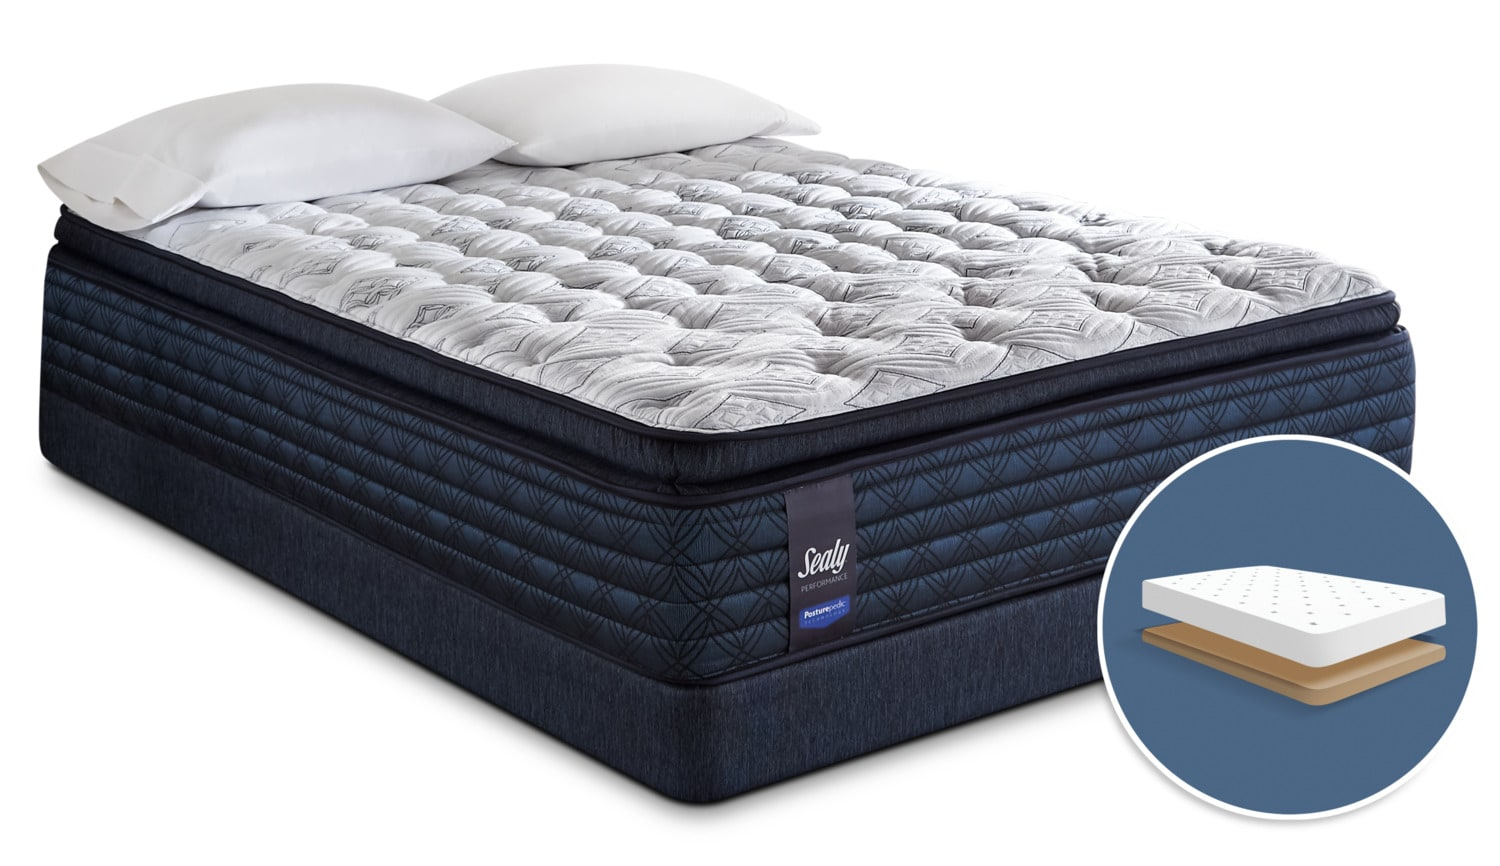 Sealy Posturepedic Hillshire Pillow-Top Plush Low-Profile Full Mattress Set